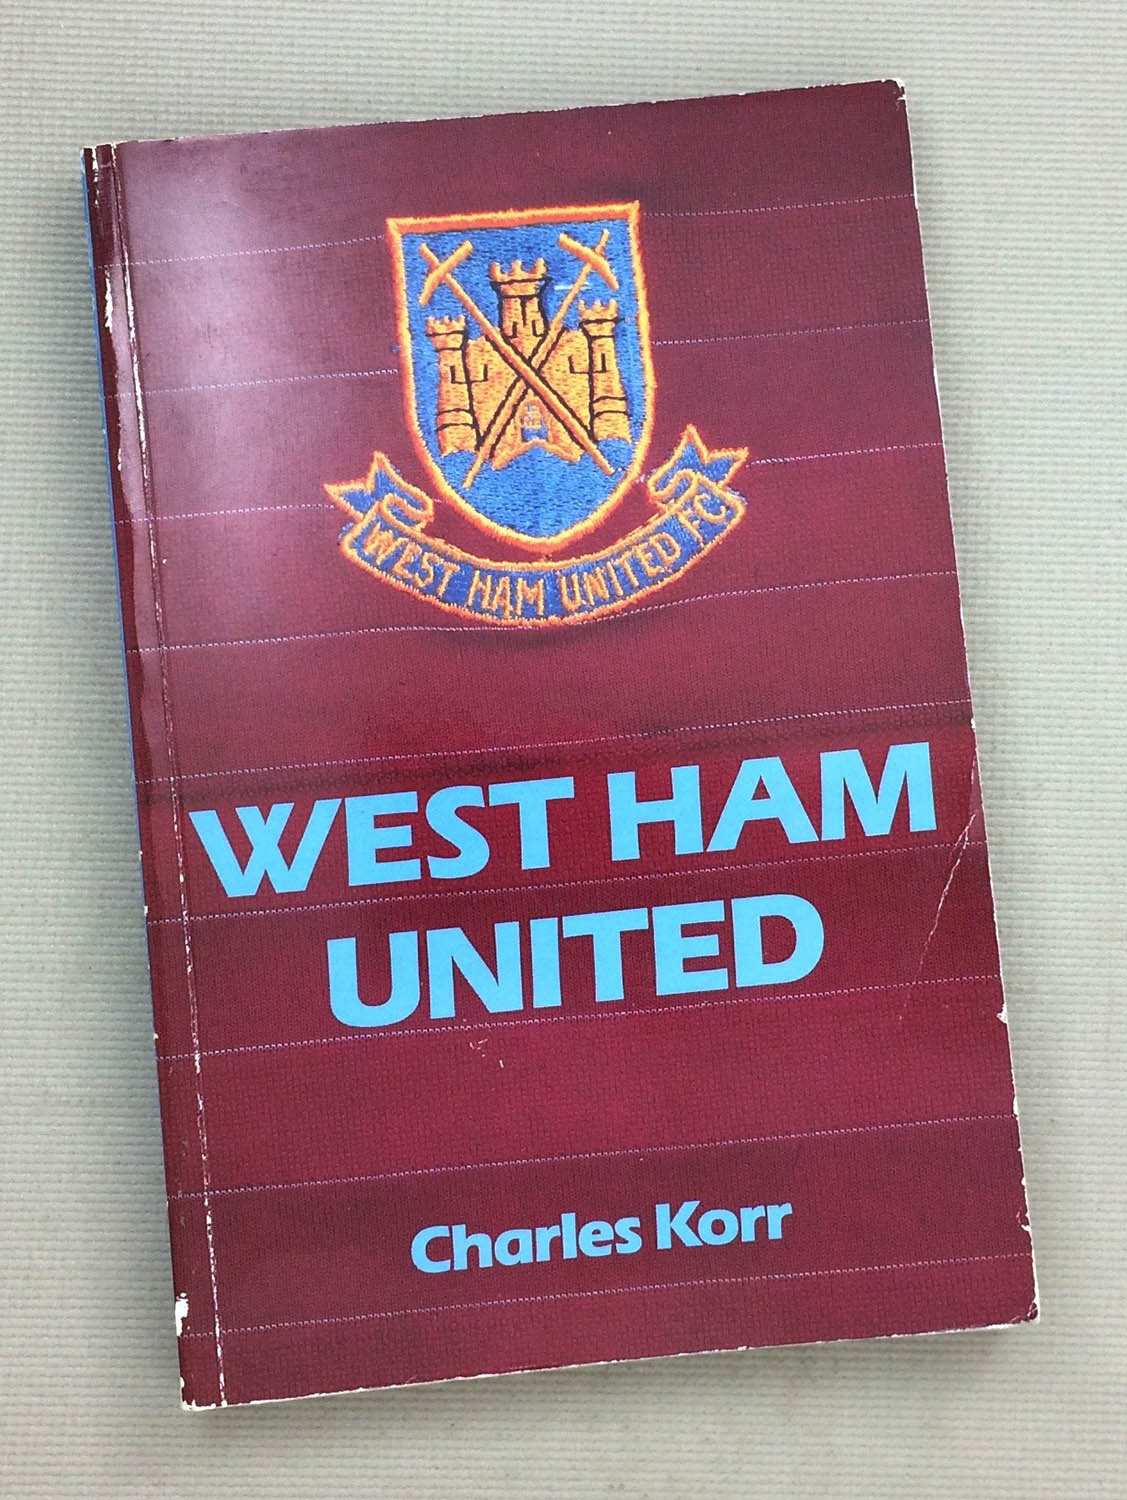 West Ham United by Charles Korr